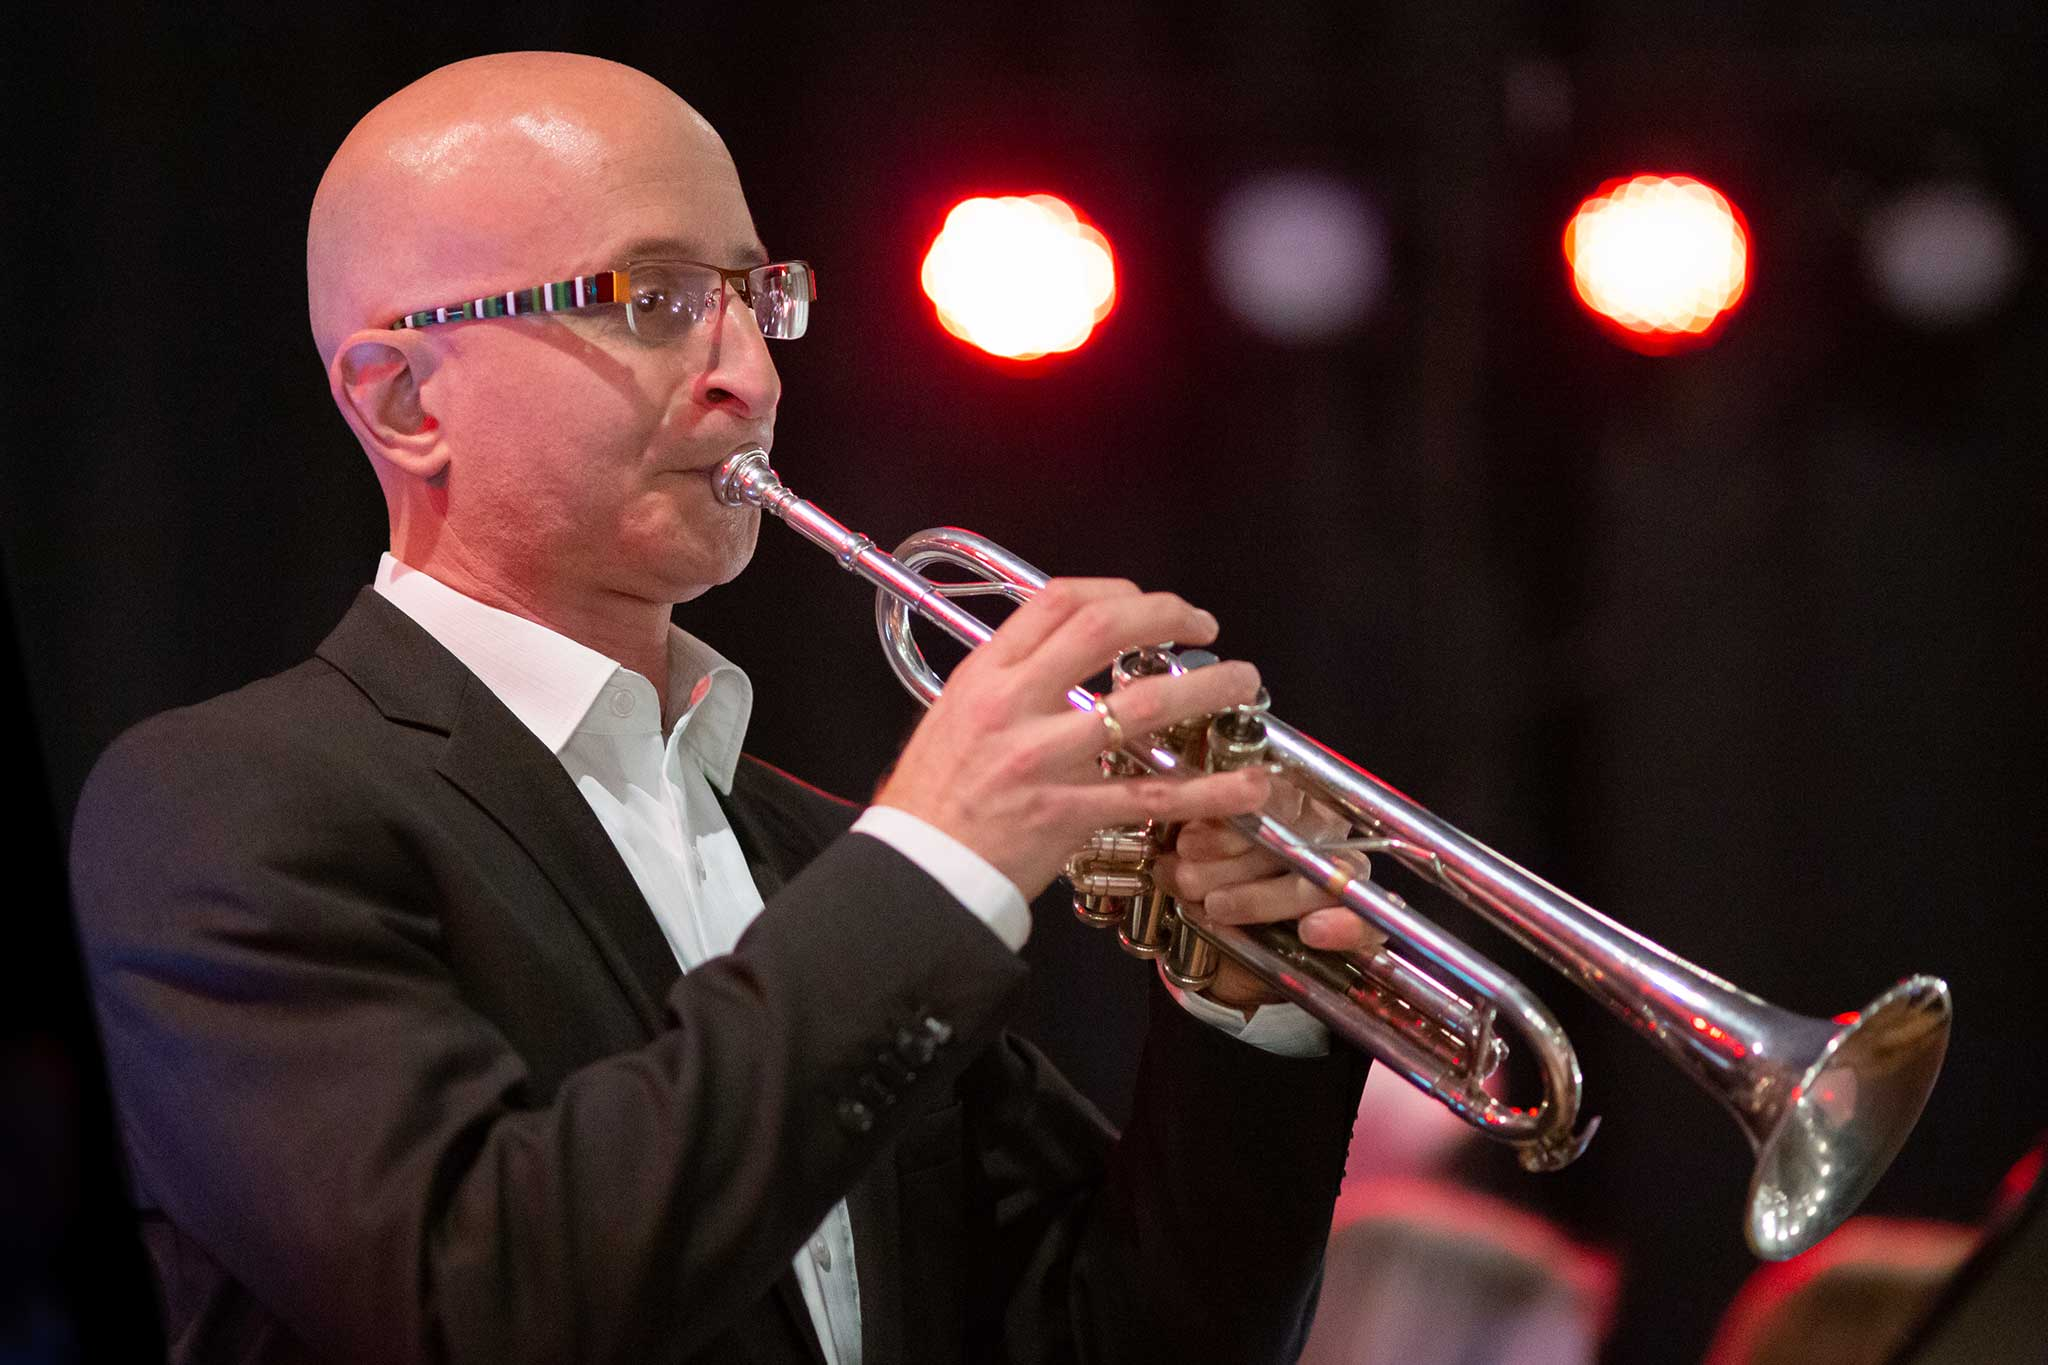 Holger Bär, Trumpet+Vocal